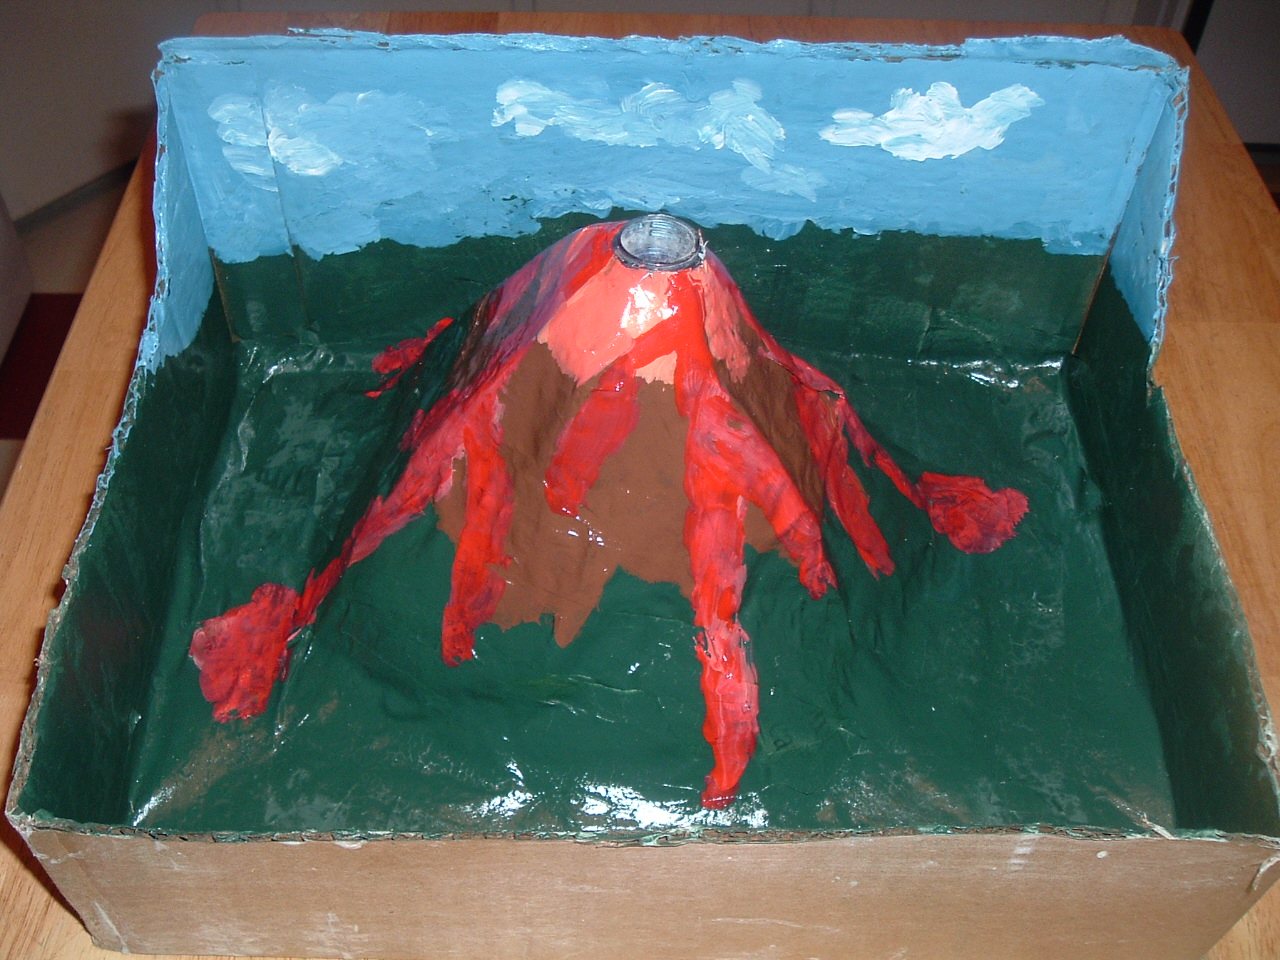 worksheet Baking Soda Volcano make a volcano project how things work build your own volcano